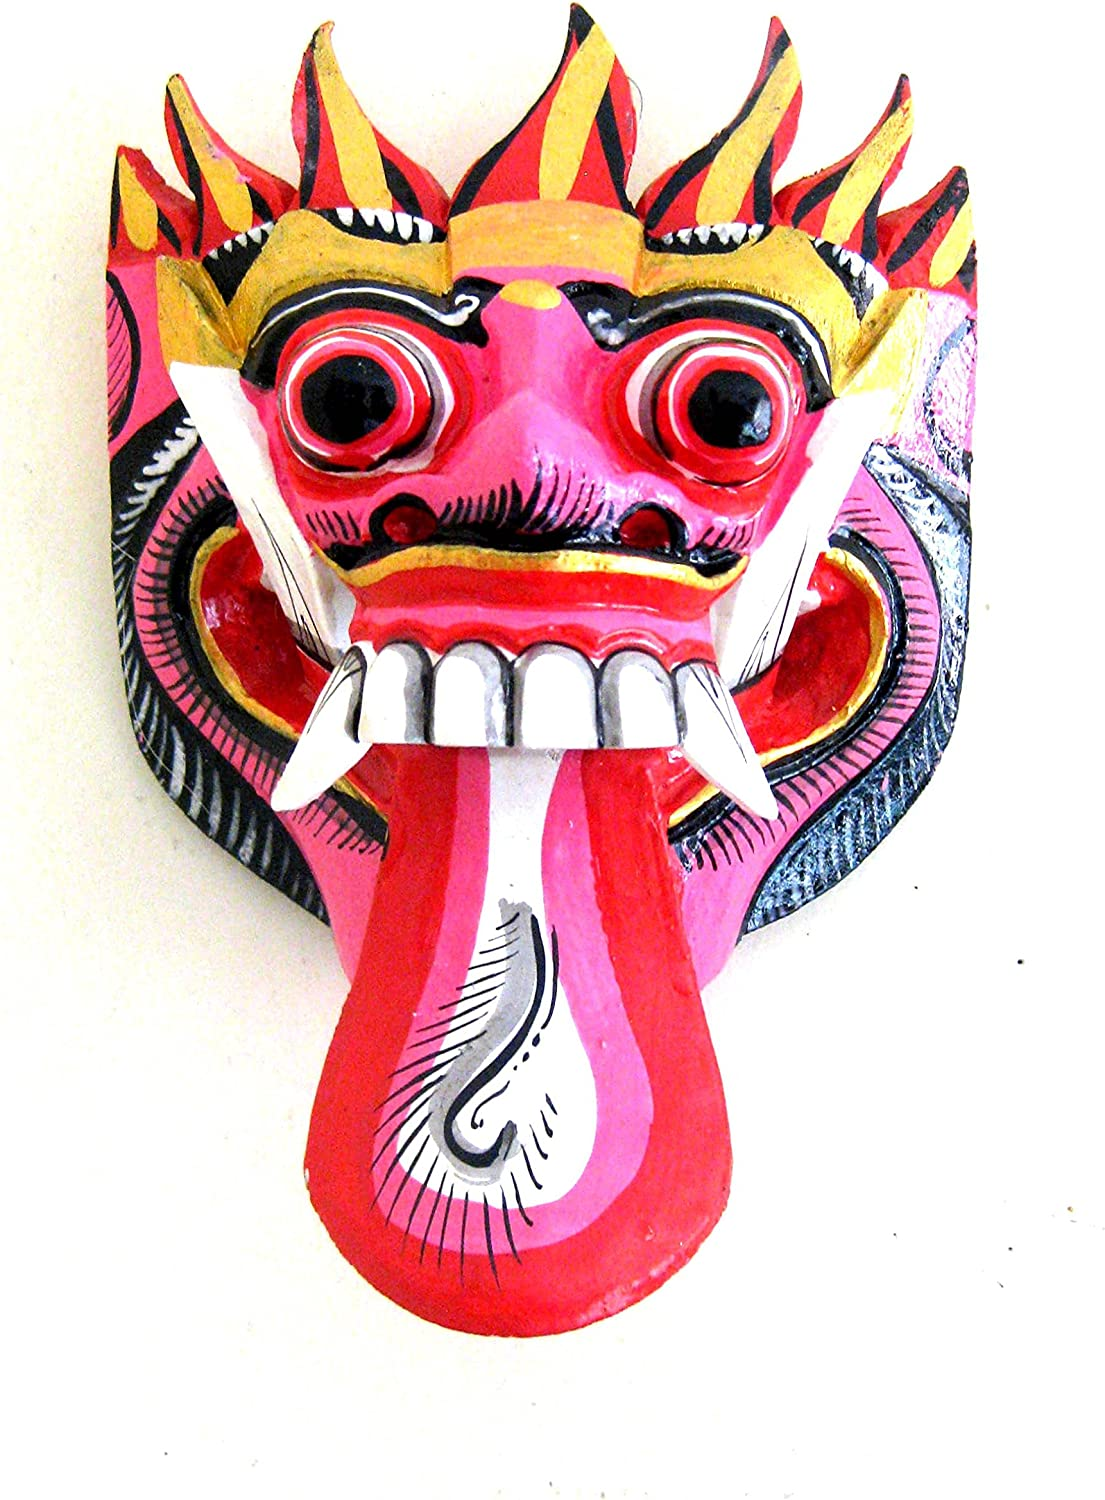 OMA African Wall Mask Decor Wooden Hand Crafted Nature Goddess Dance Wall Mask For Luck & Protection African Home Decor Gift Multi Color